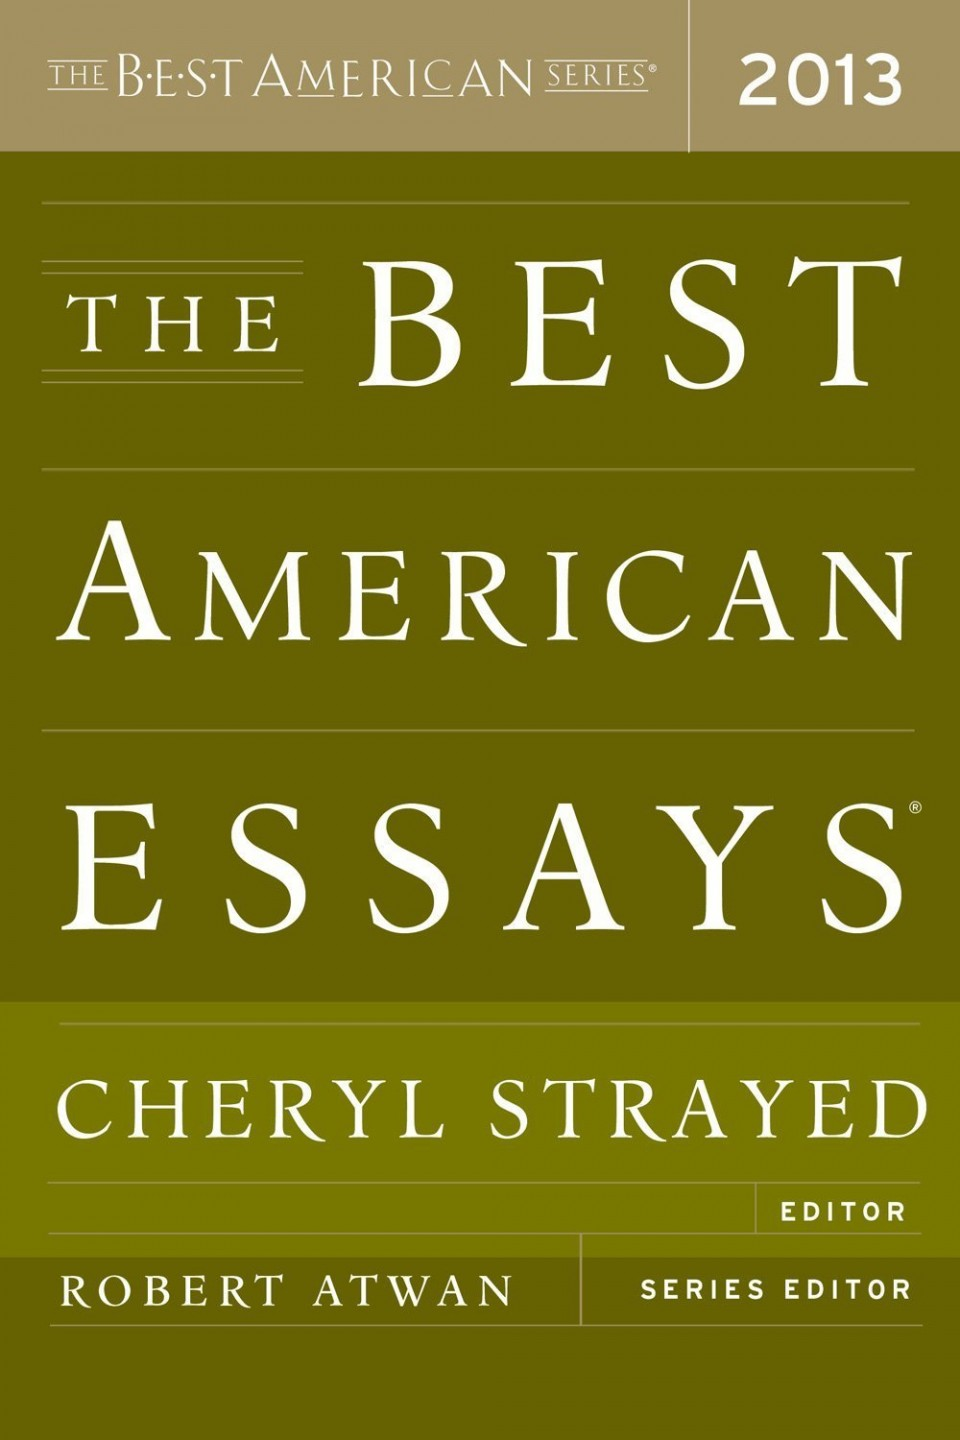 004 The Best American Essays Essay Wonderful 2018 Pdf 2017 Table Of Contents 2015 Free 960